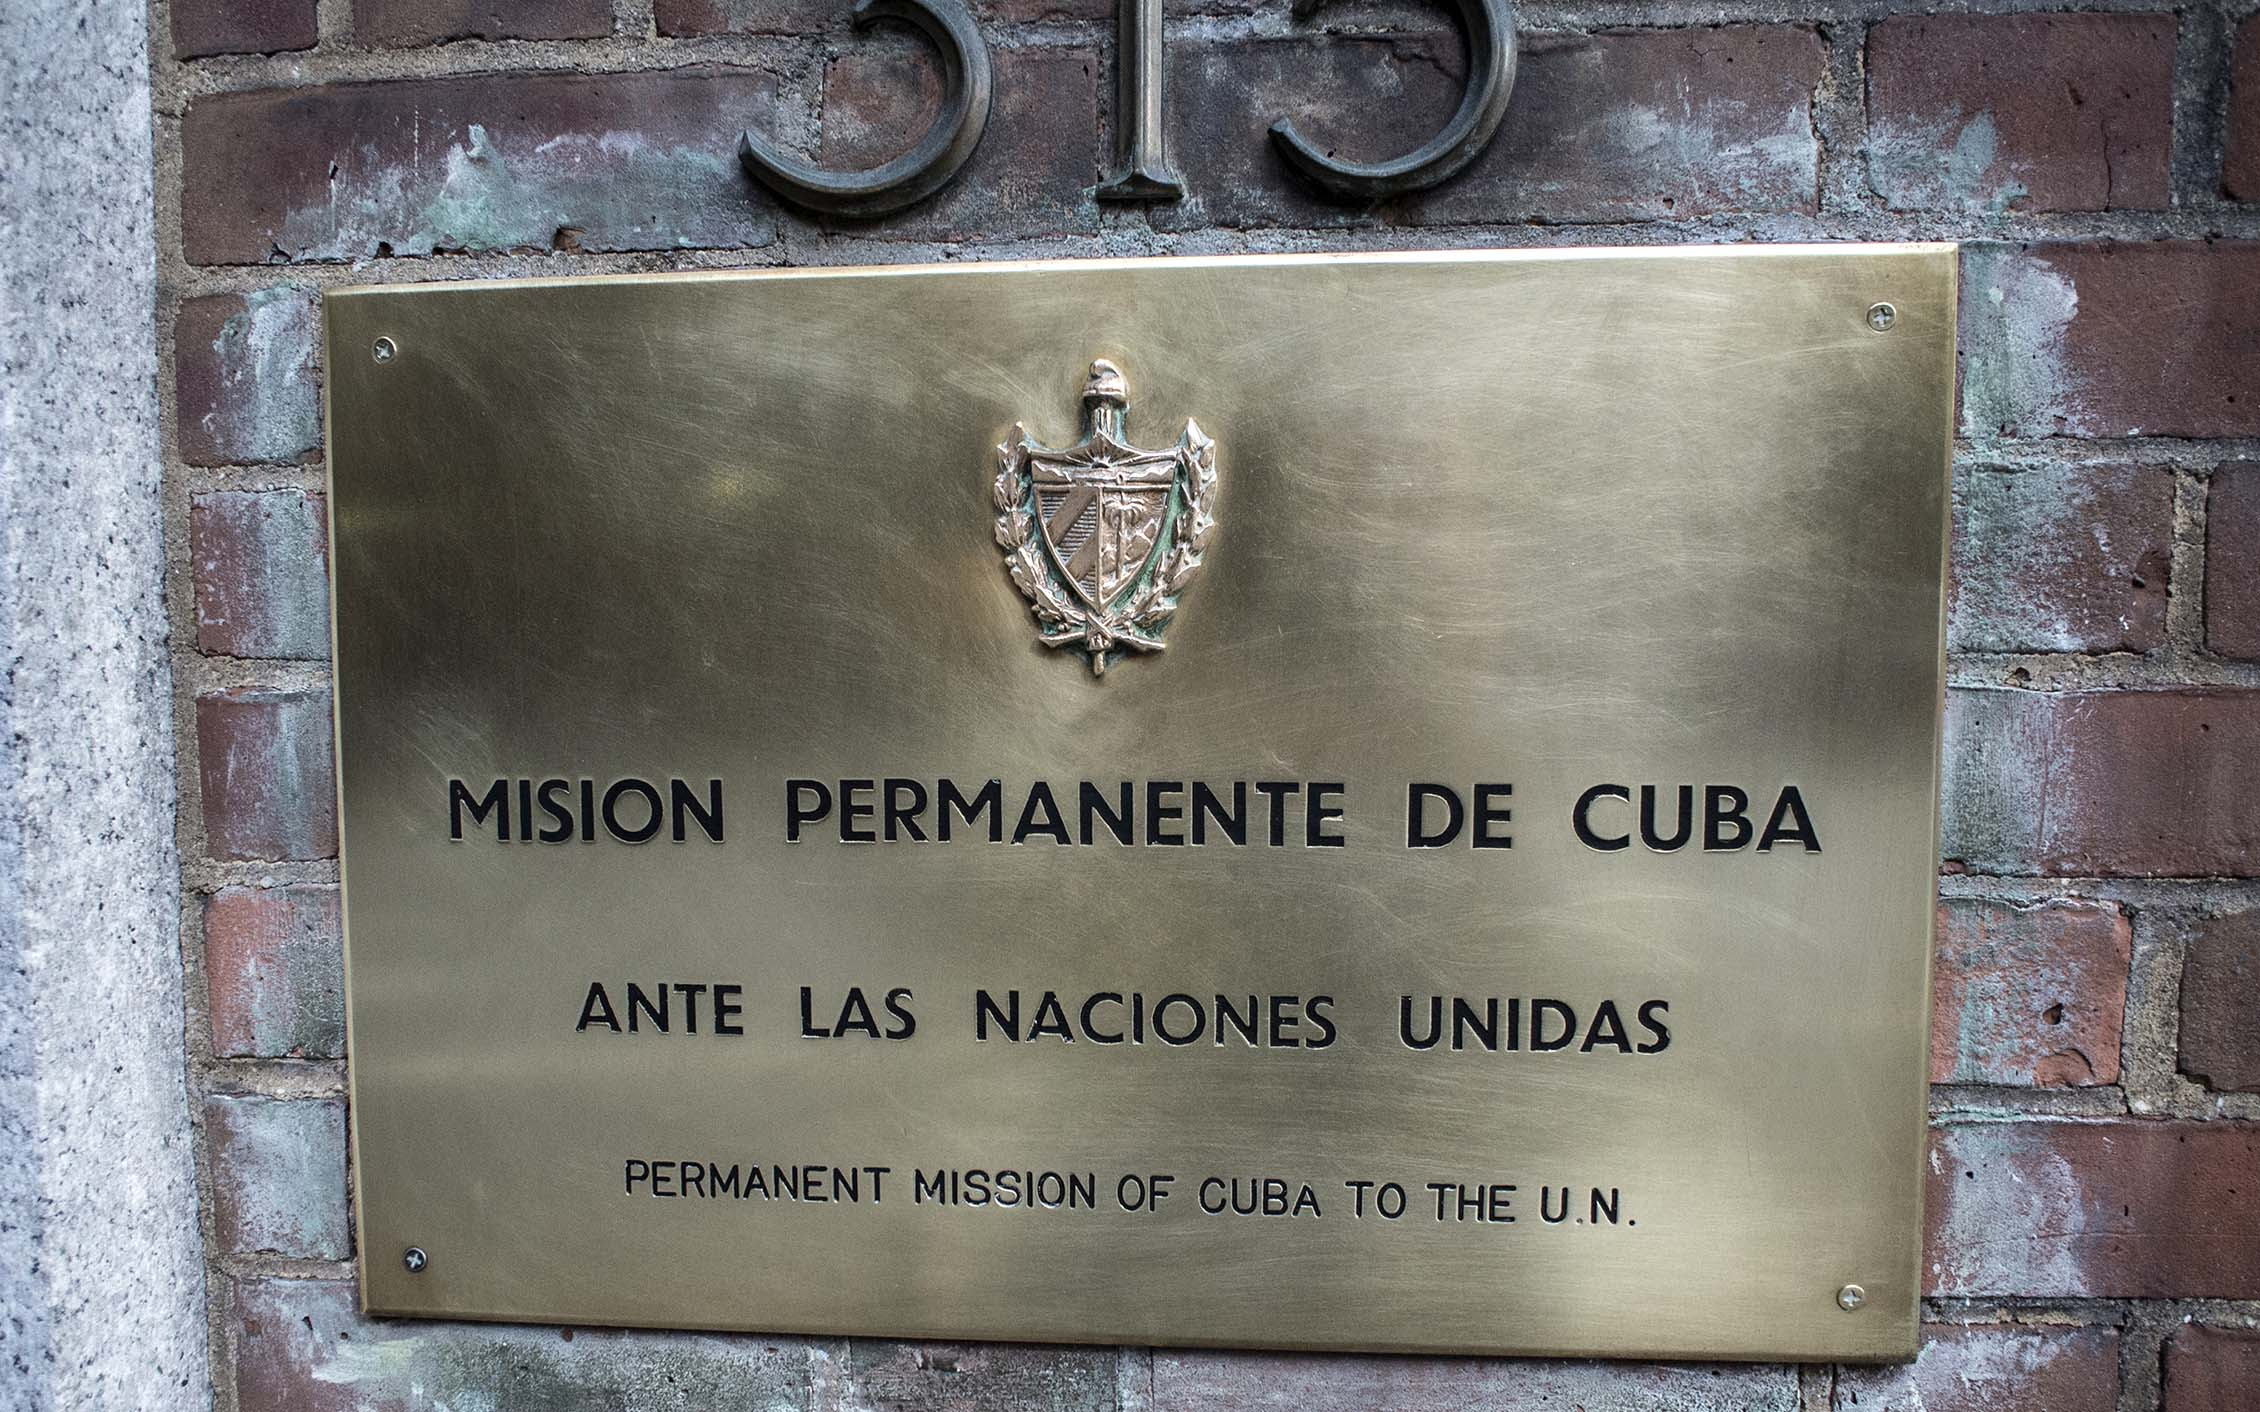 Two members of Cuba's United Nations mission ordered to leave US